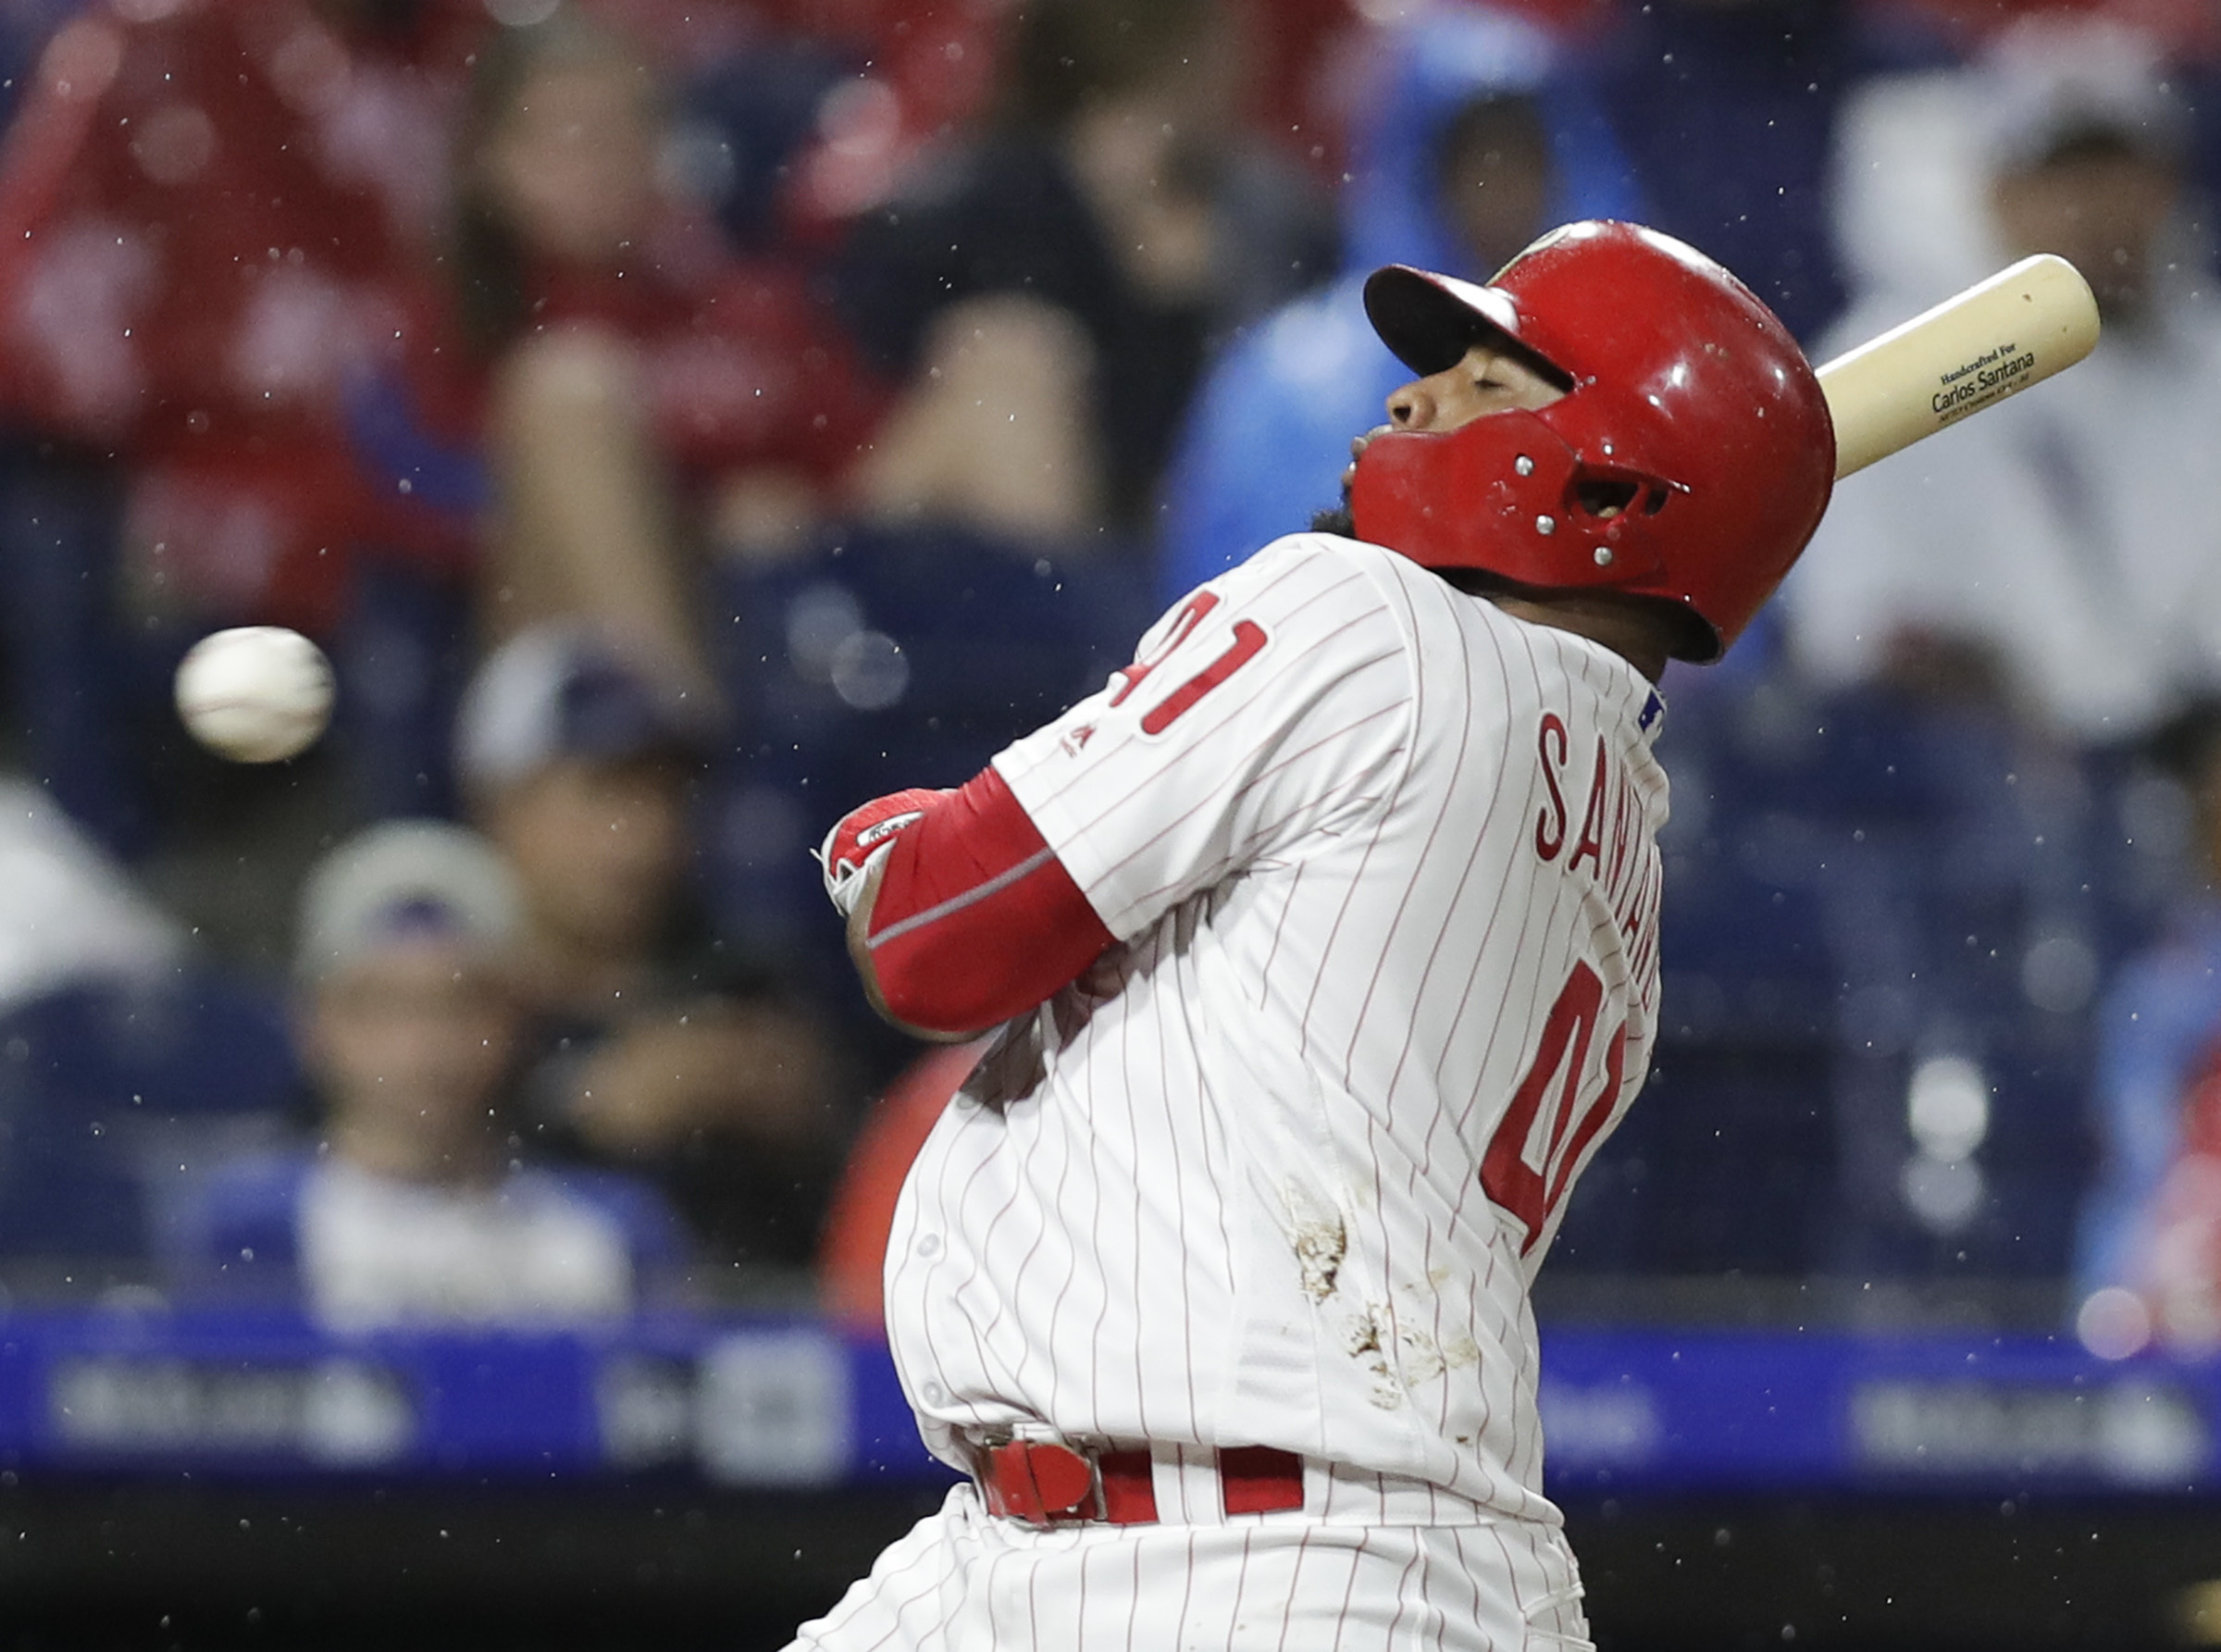 Phillies first baseman Carlos Santana�s production this season could be a cautionary tale on becoming too attracted to free agents.